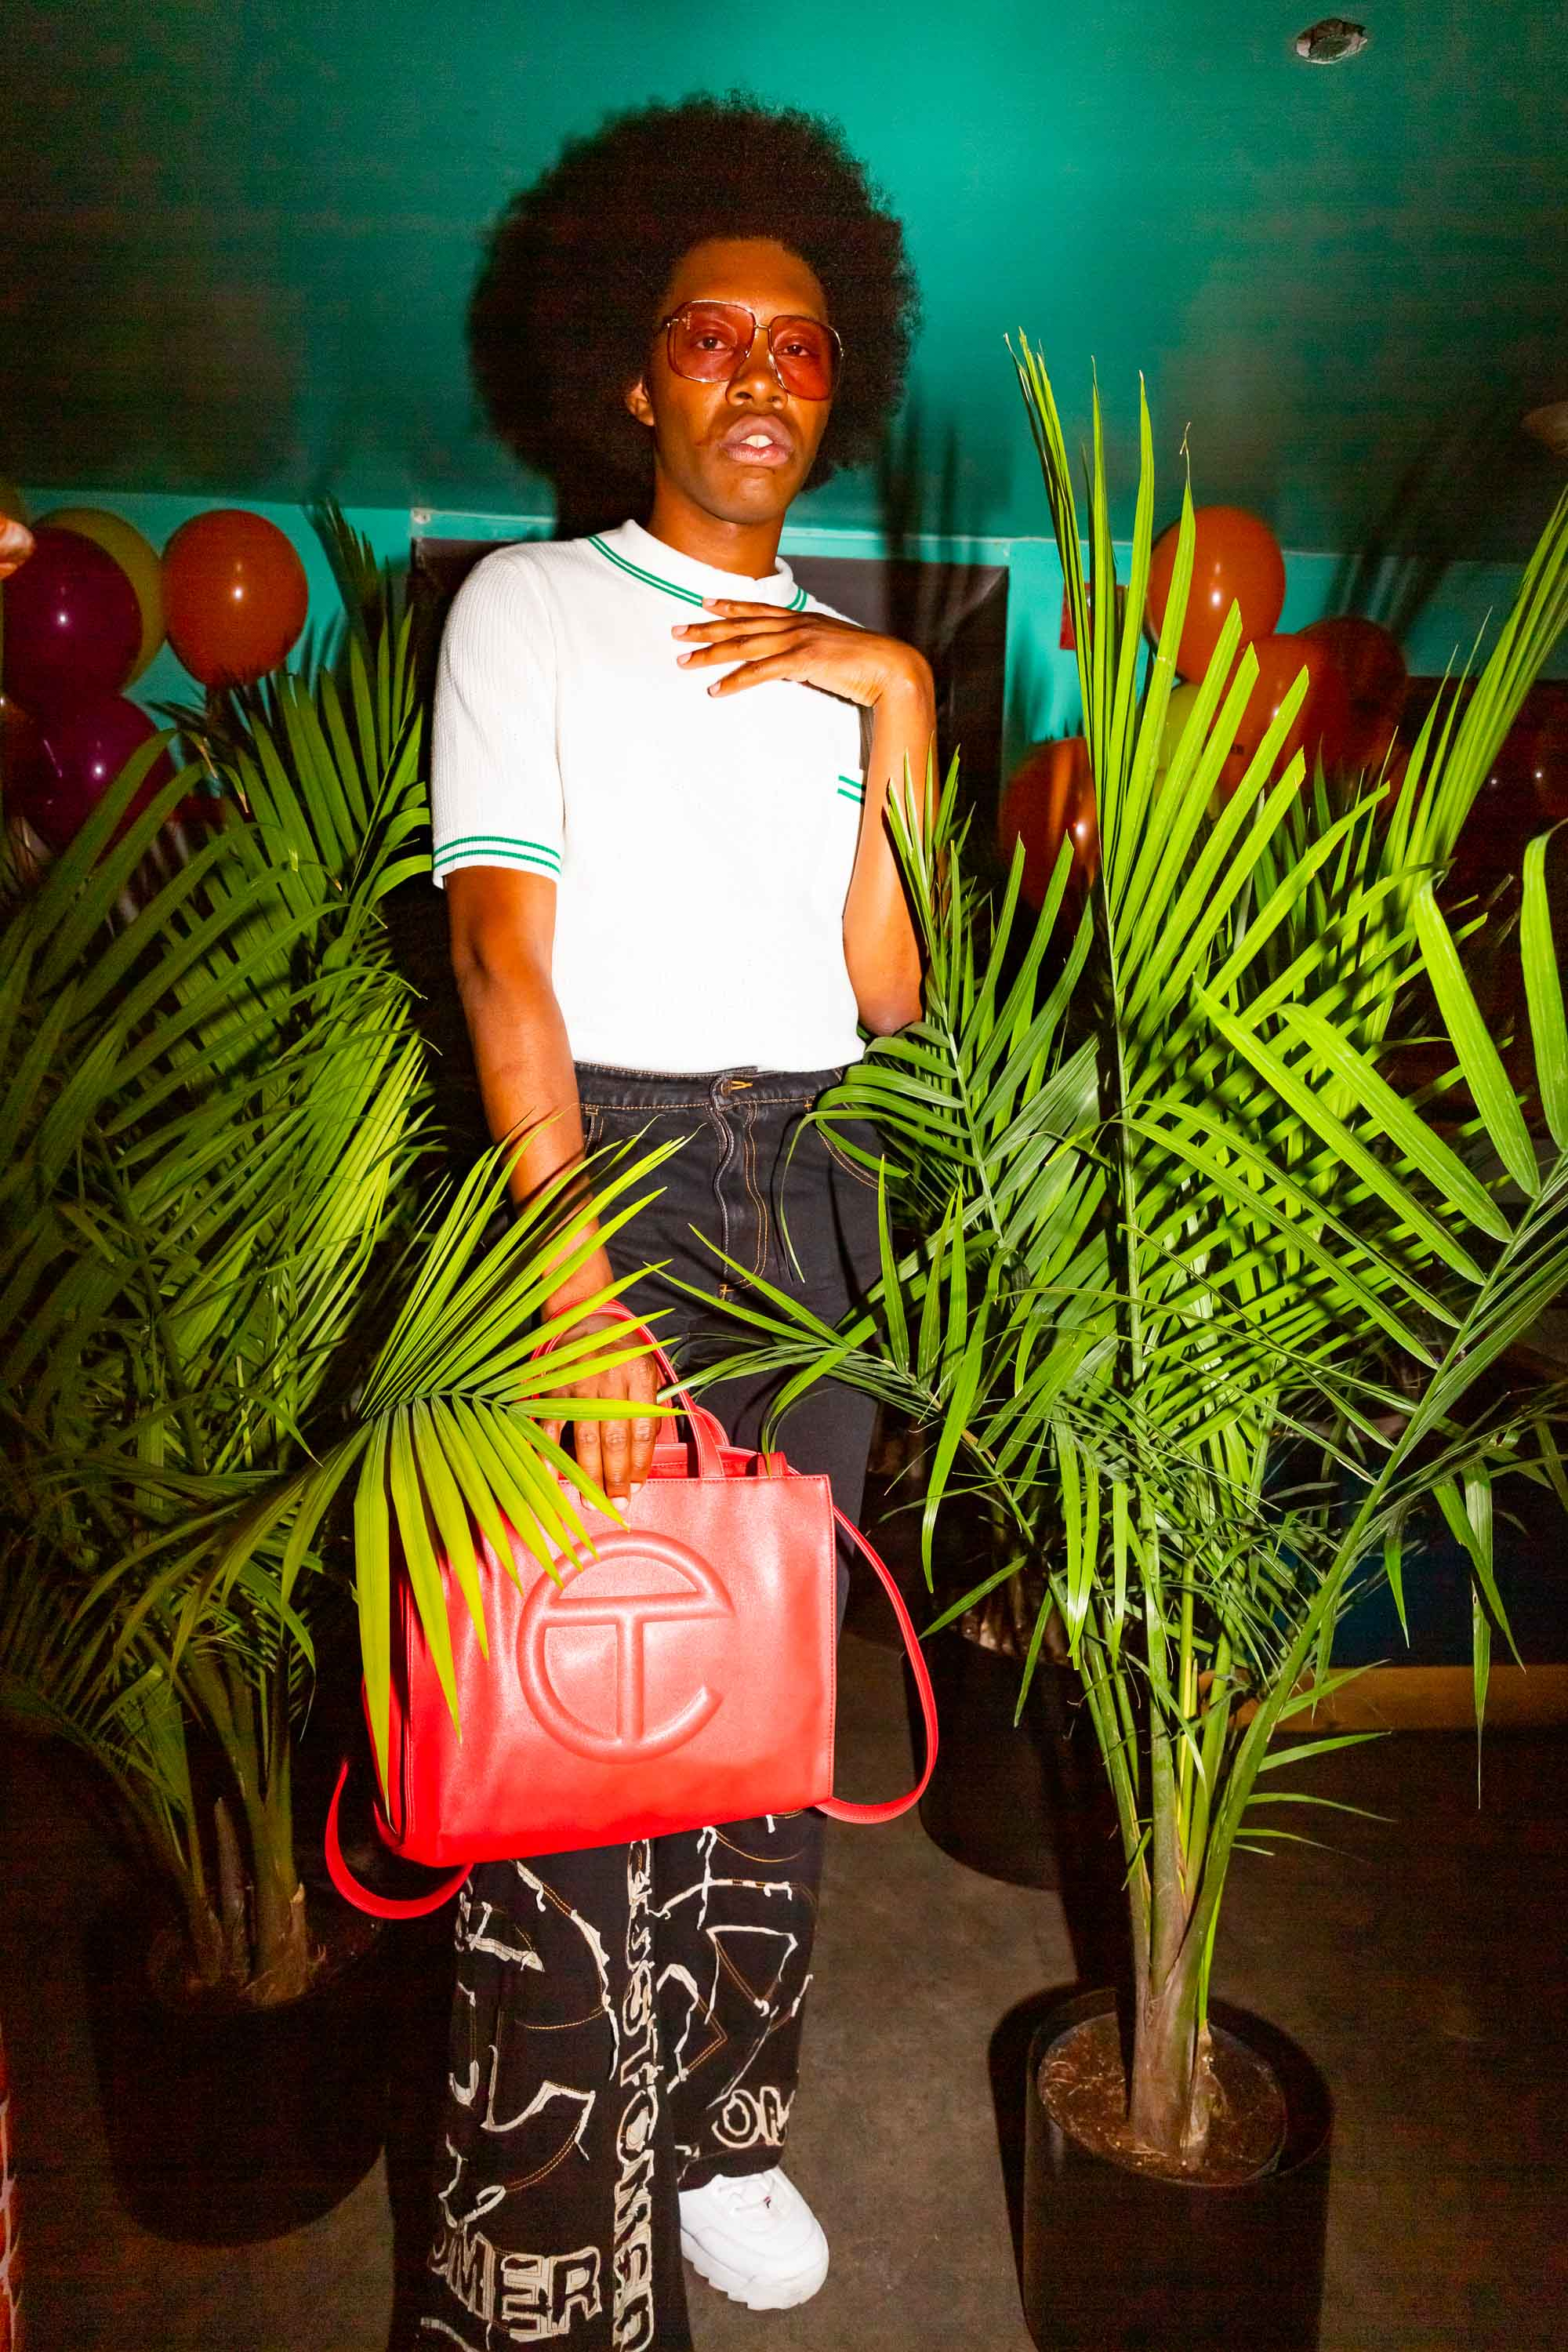 Leavy x Gayletter Issue10 Party-5526.jpg